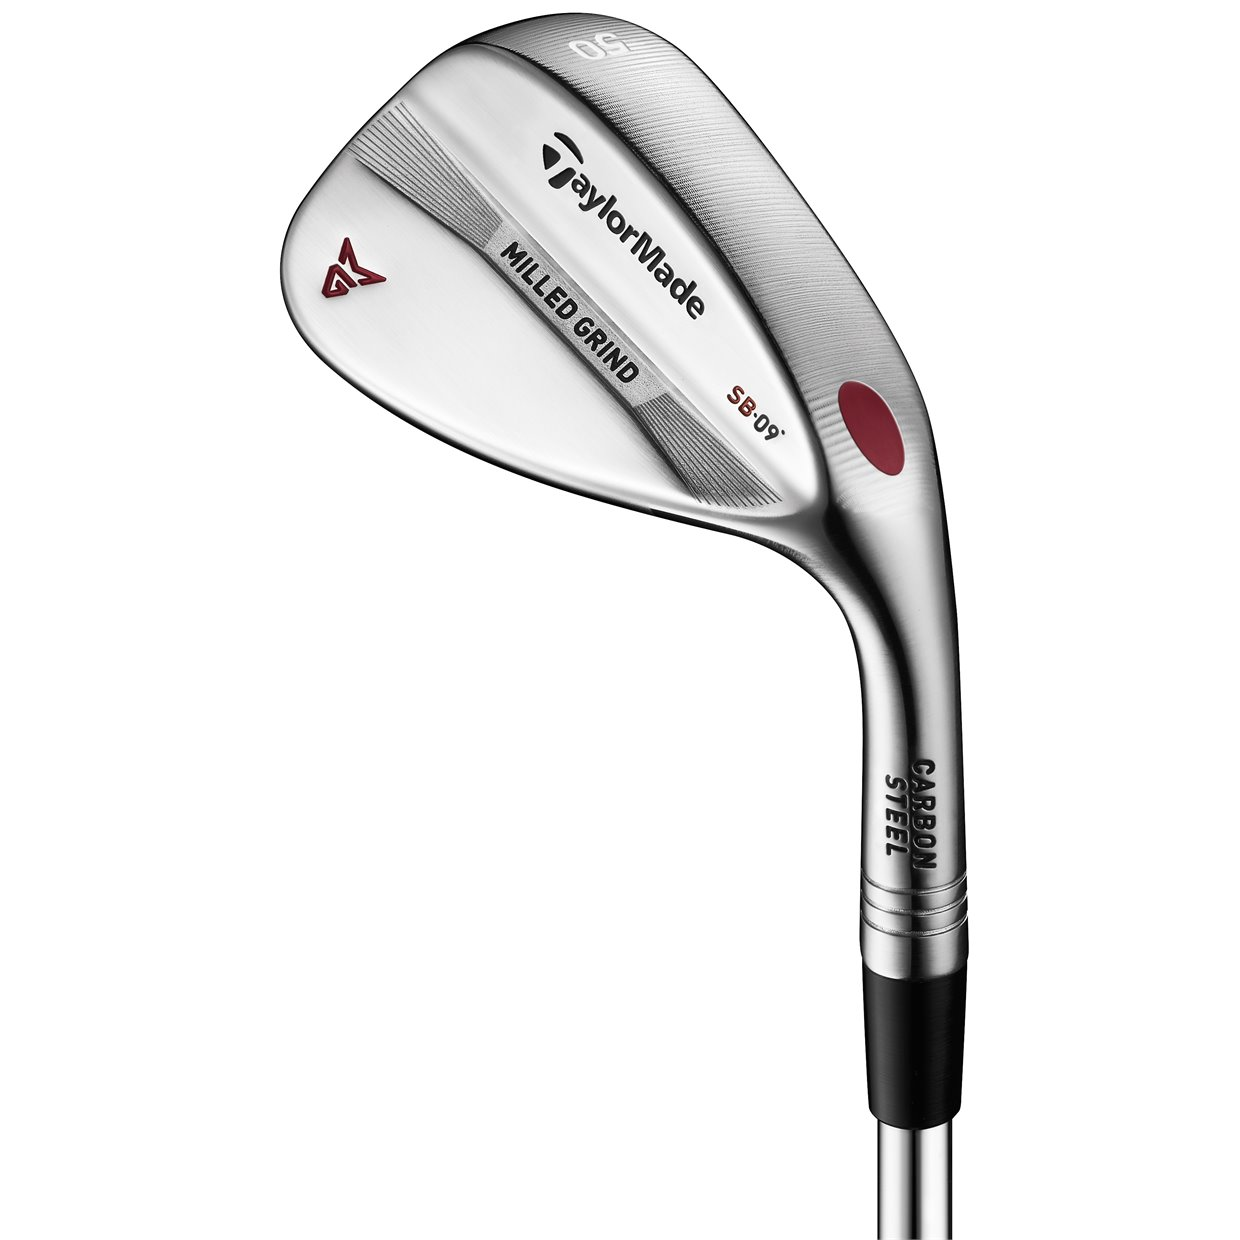 TaylorMade Milled Grind Satin Chrome Wedge Sand Wedge 56 Degree Used Golf  Club at GlobalGolf.com